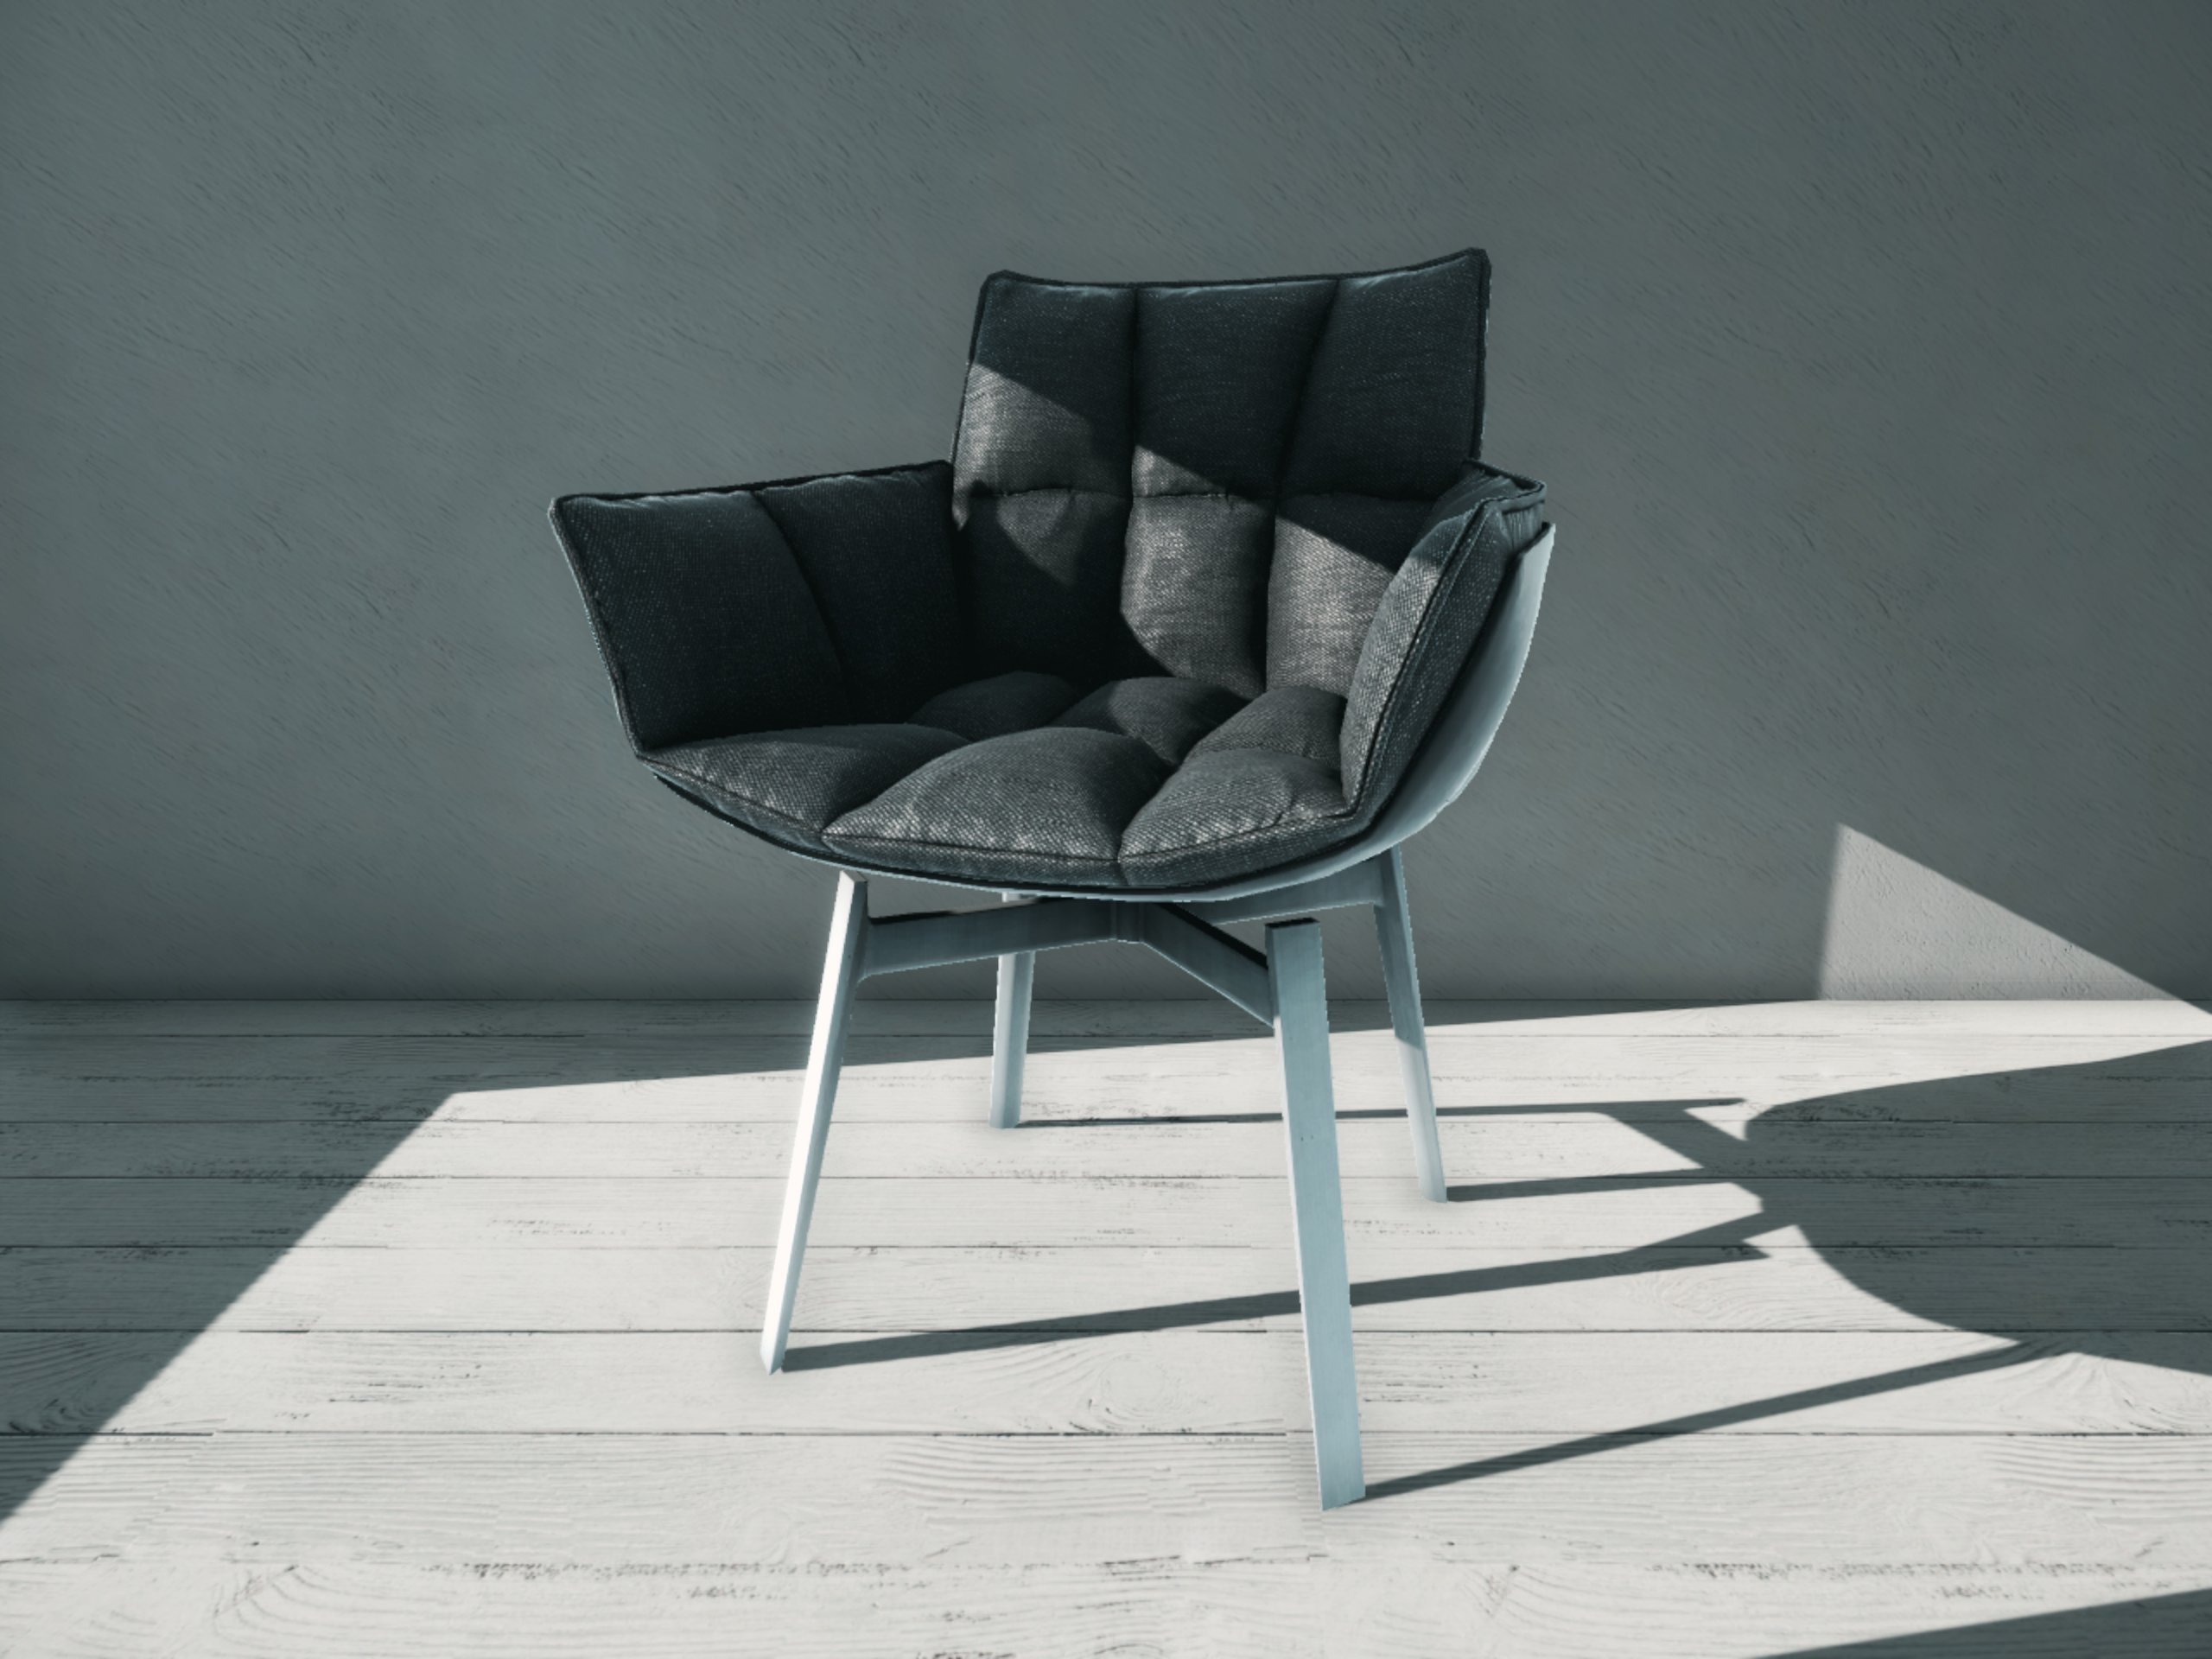 Enlight Furniture - Armchair 01